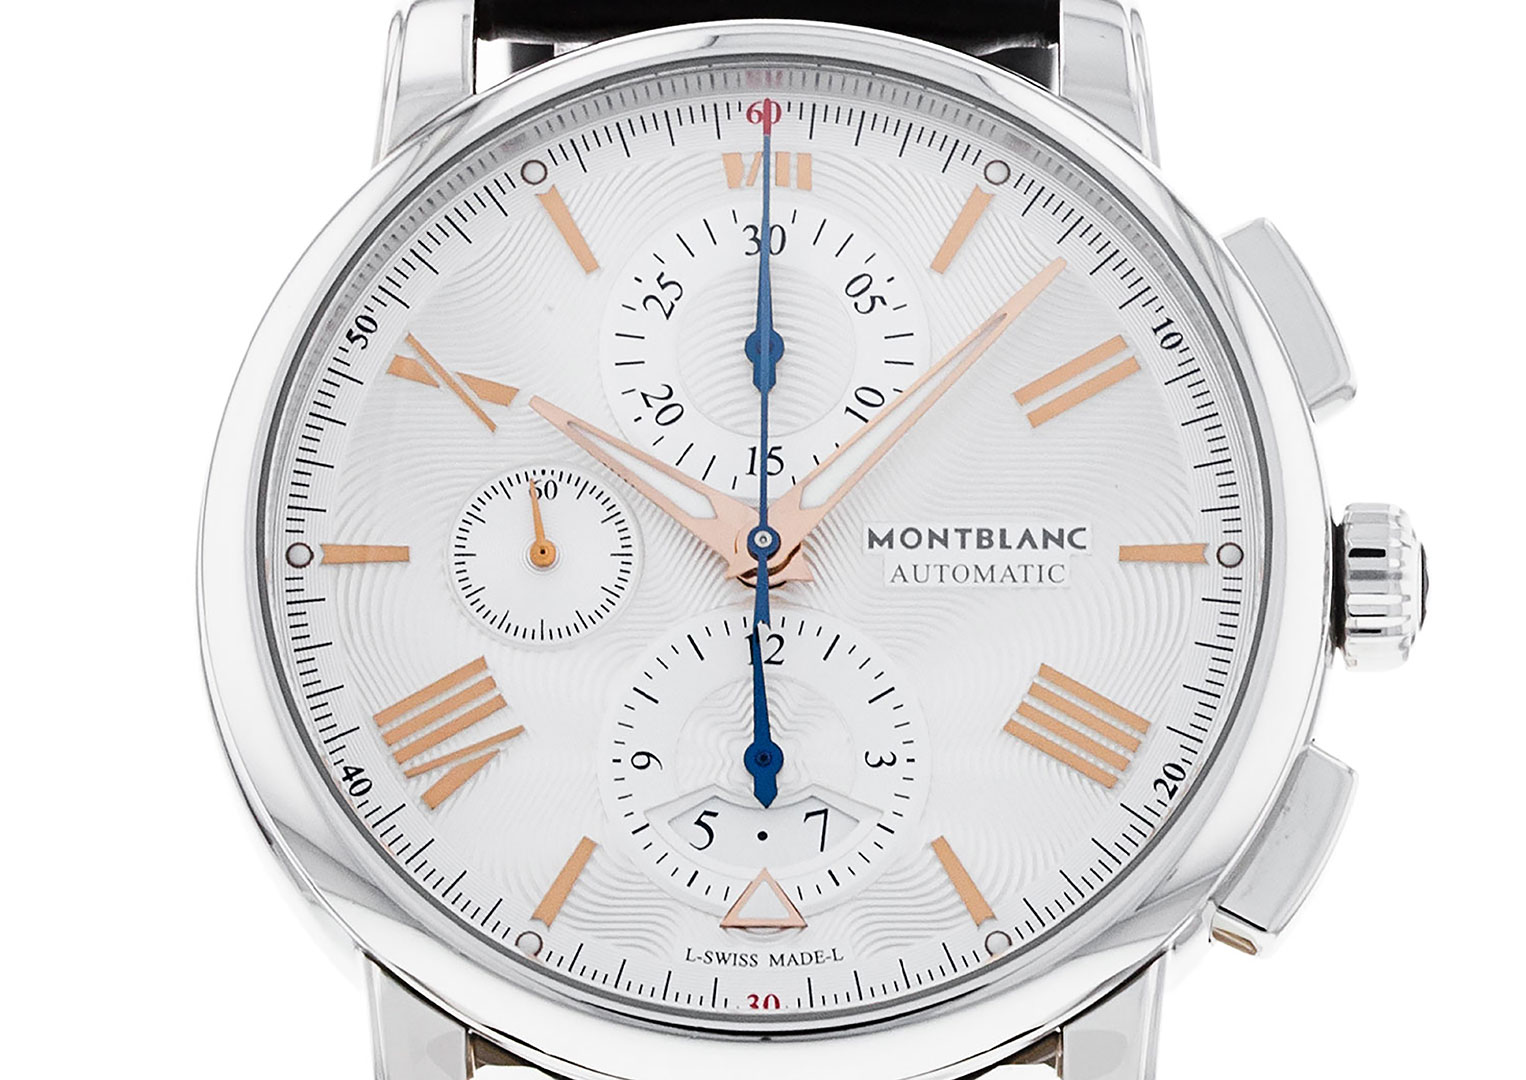 This Montblanc Star 4810 model from 2018 is just one contemporary watch that uses a Valjoux Calibre 7750